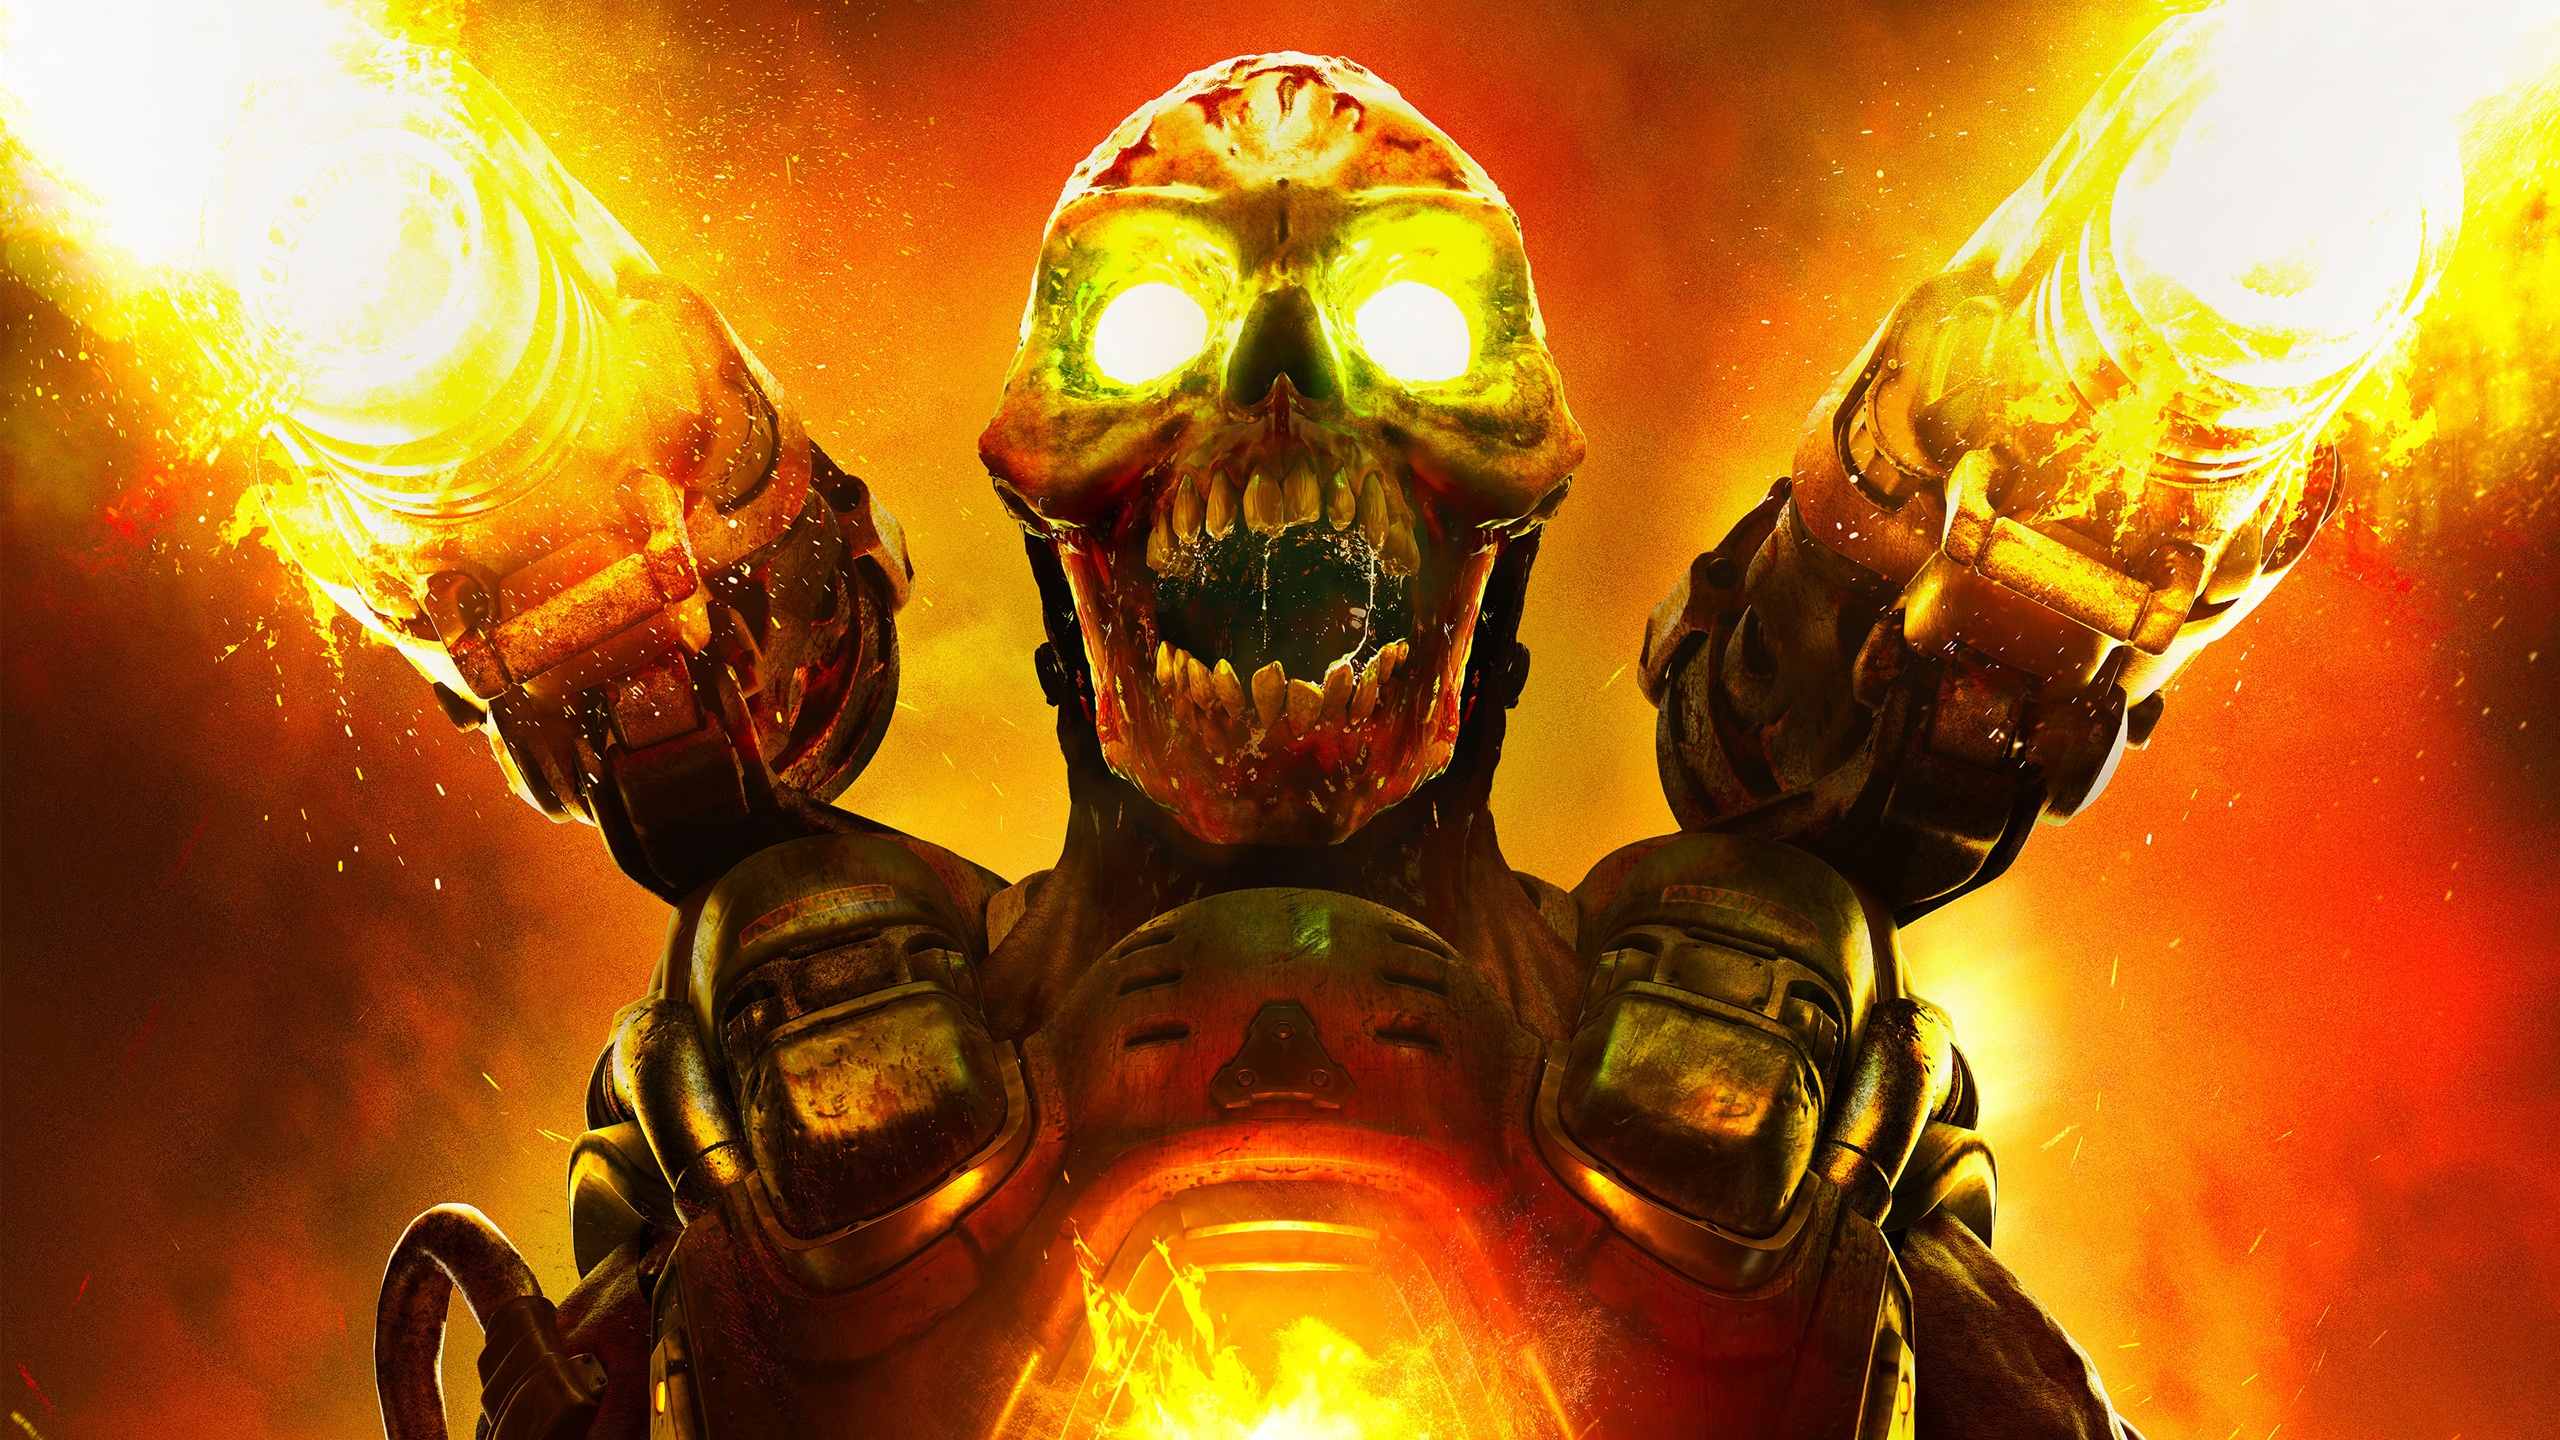 doom 2016 game wallpapers in jpg format for free download